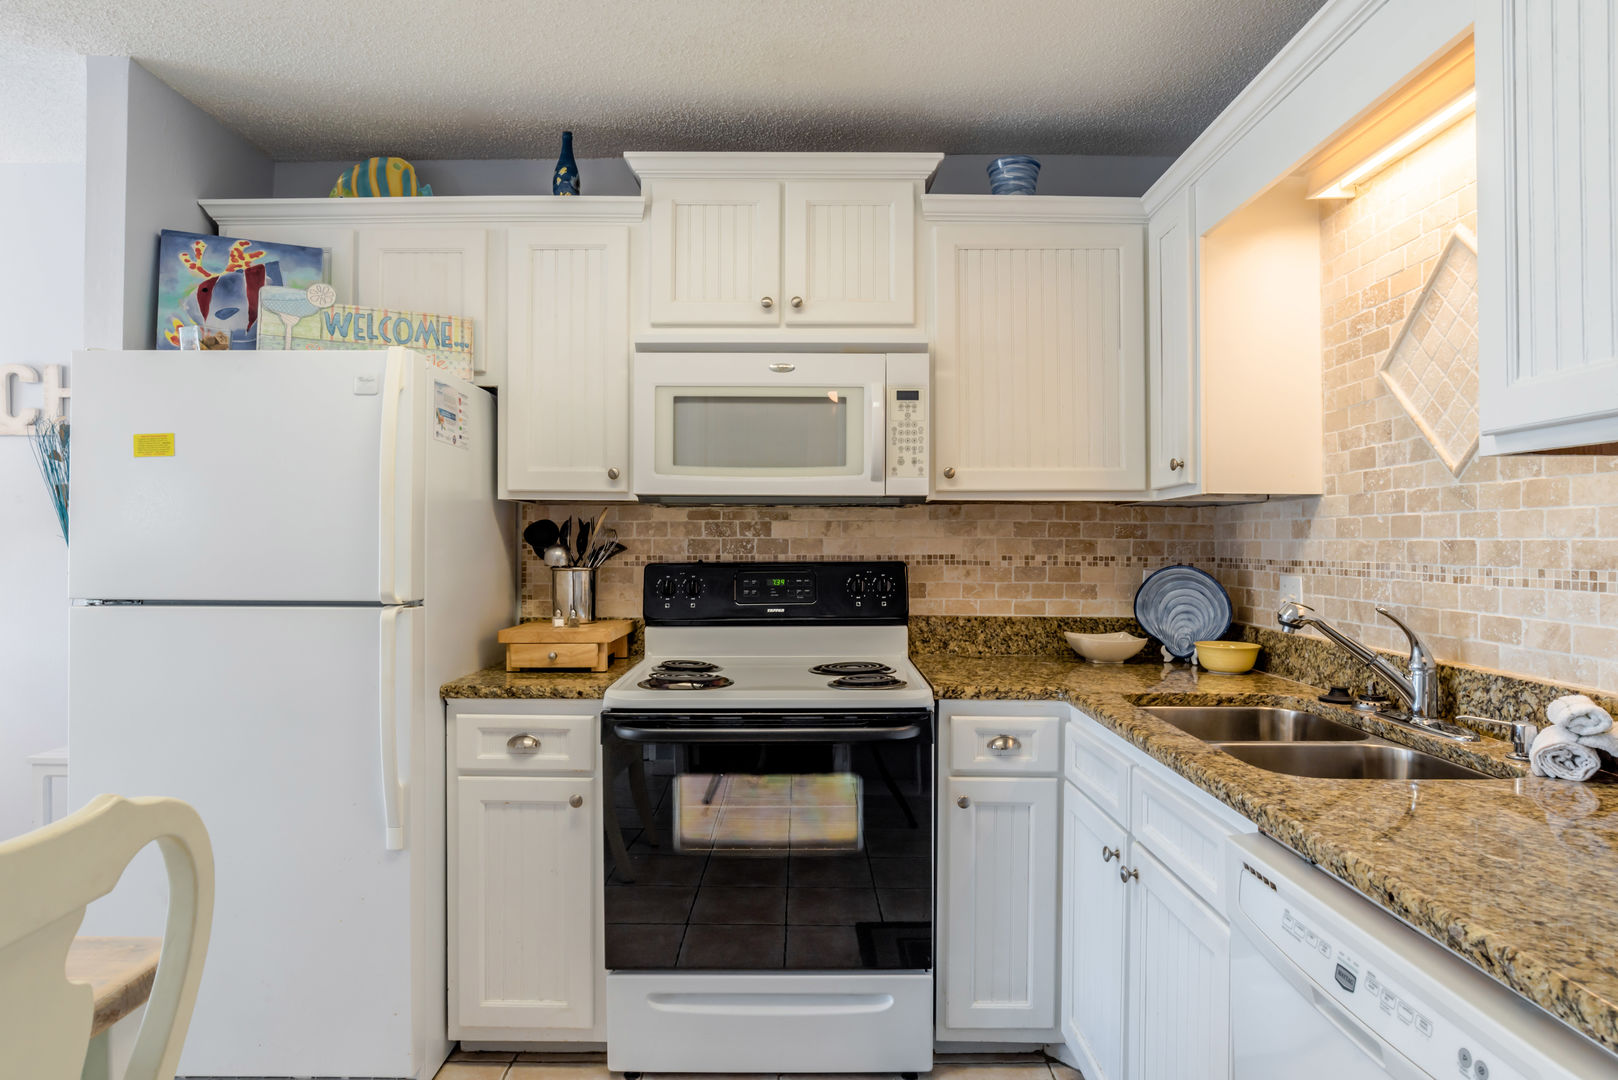 Fully Equipped Kitchen of this Fort Morgan Beach Rental, with modern appliances.